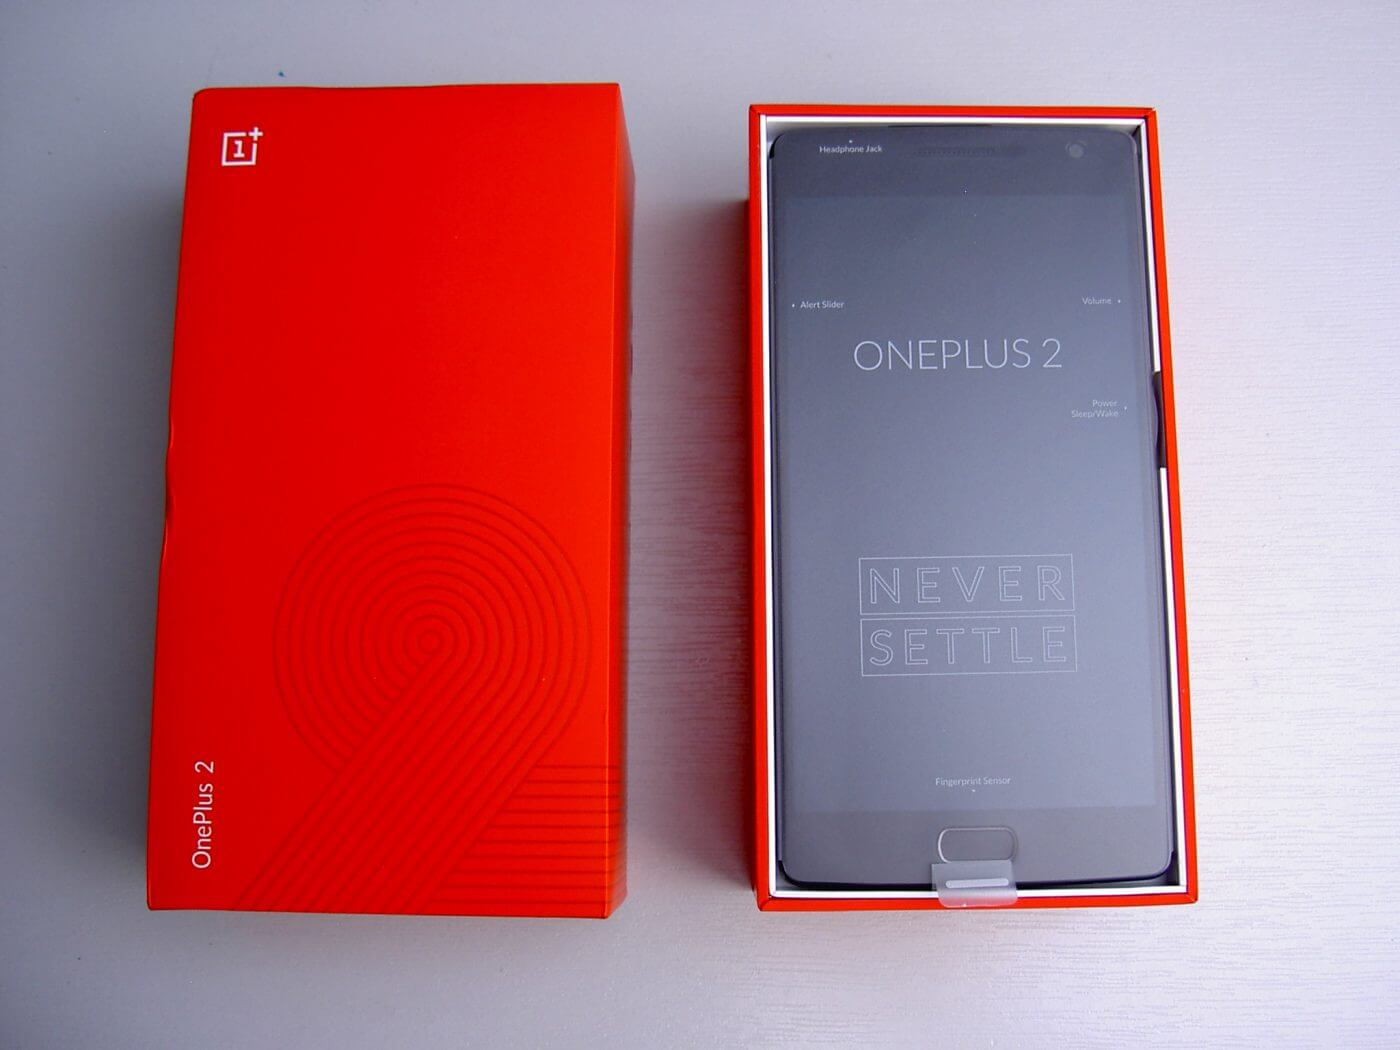 OnePlus 2 box open